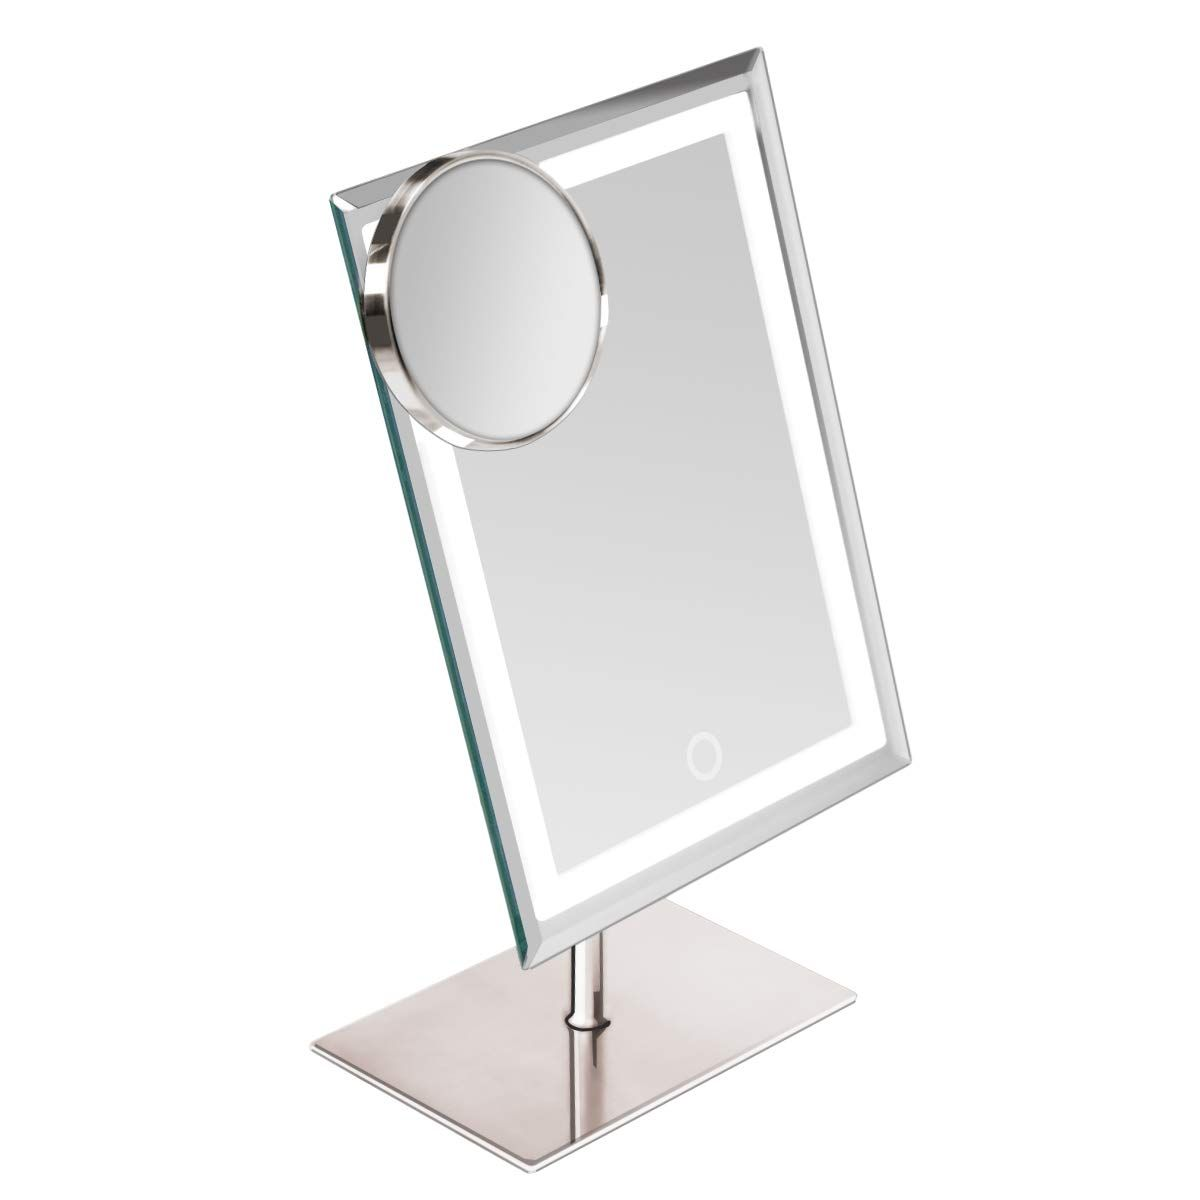 Waneway Lighted Makeup Vanity Mi Mirror Makeup Vanity Mirror Led Makeup Mirror